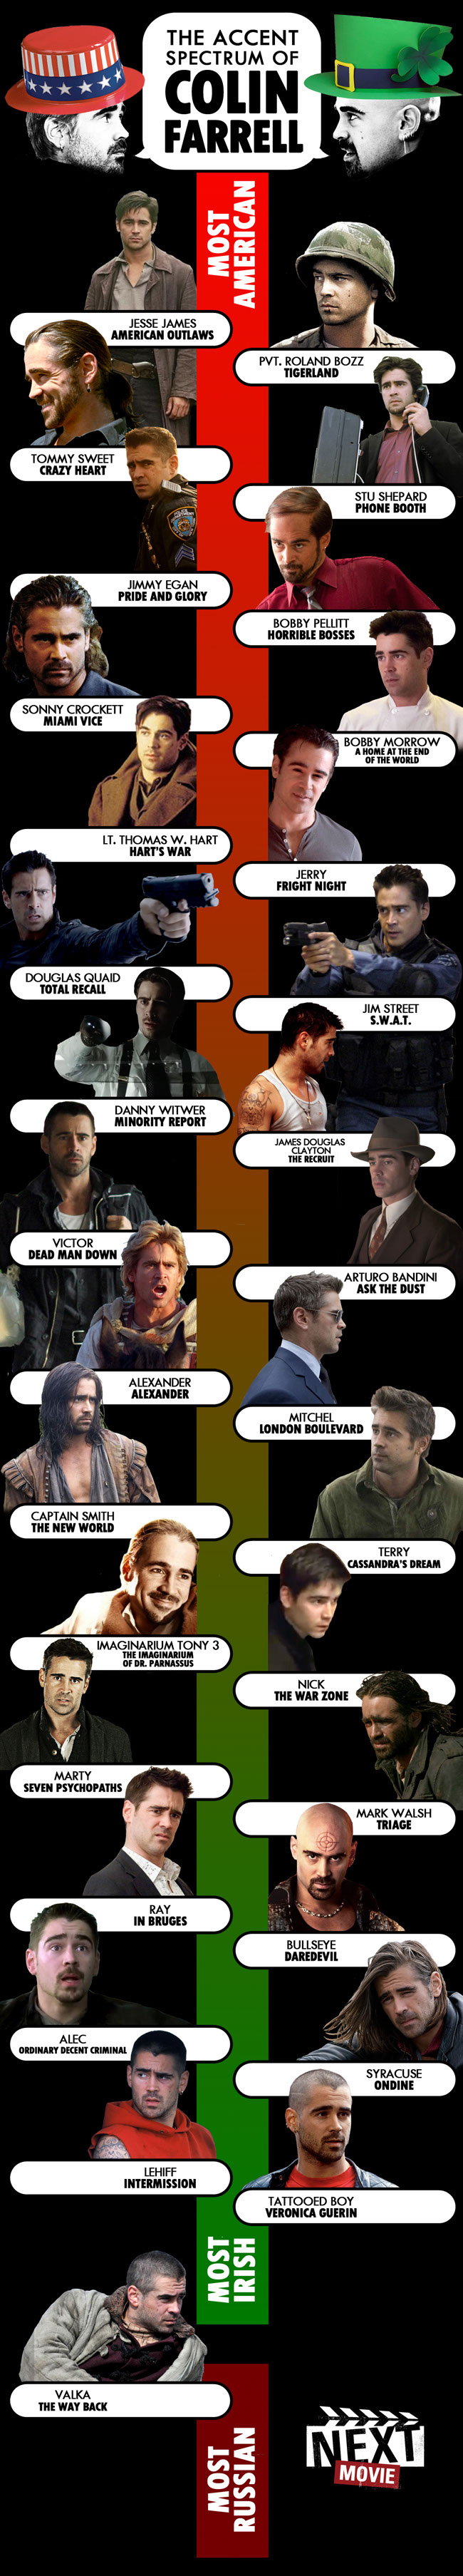 Colin Farrell Multinational-Infographic